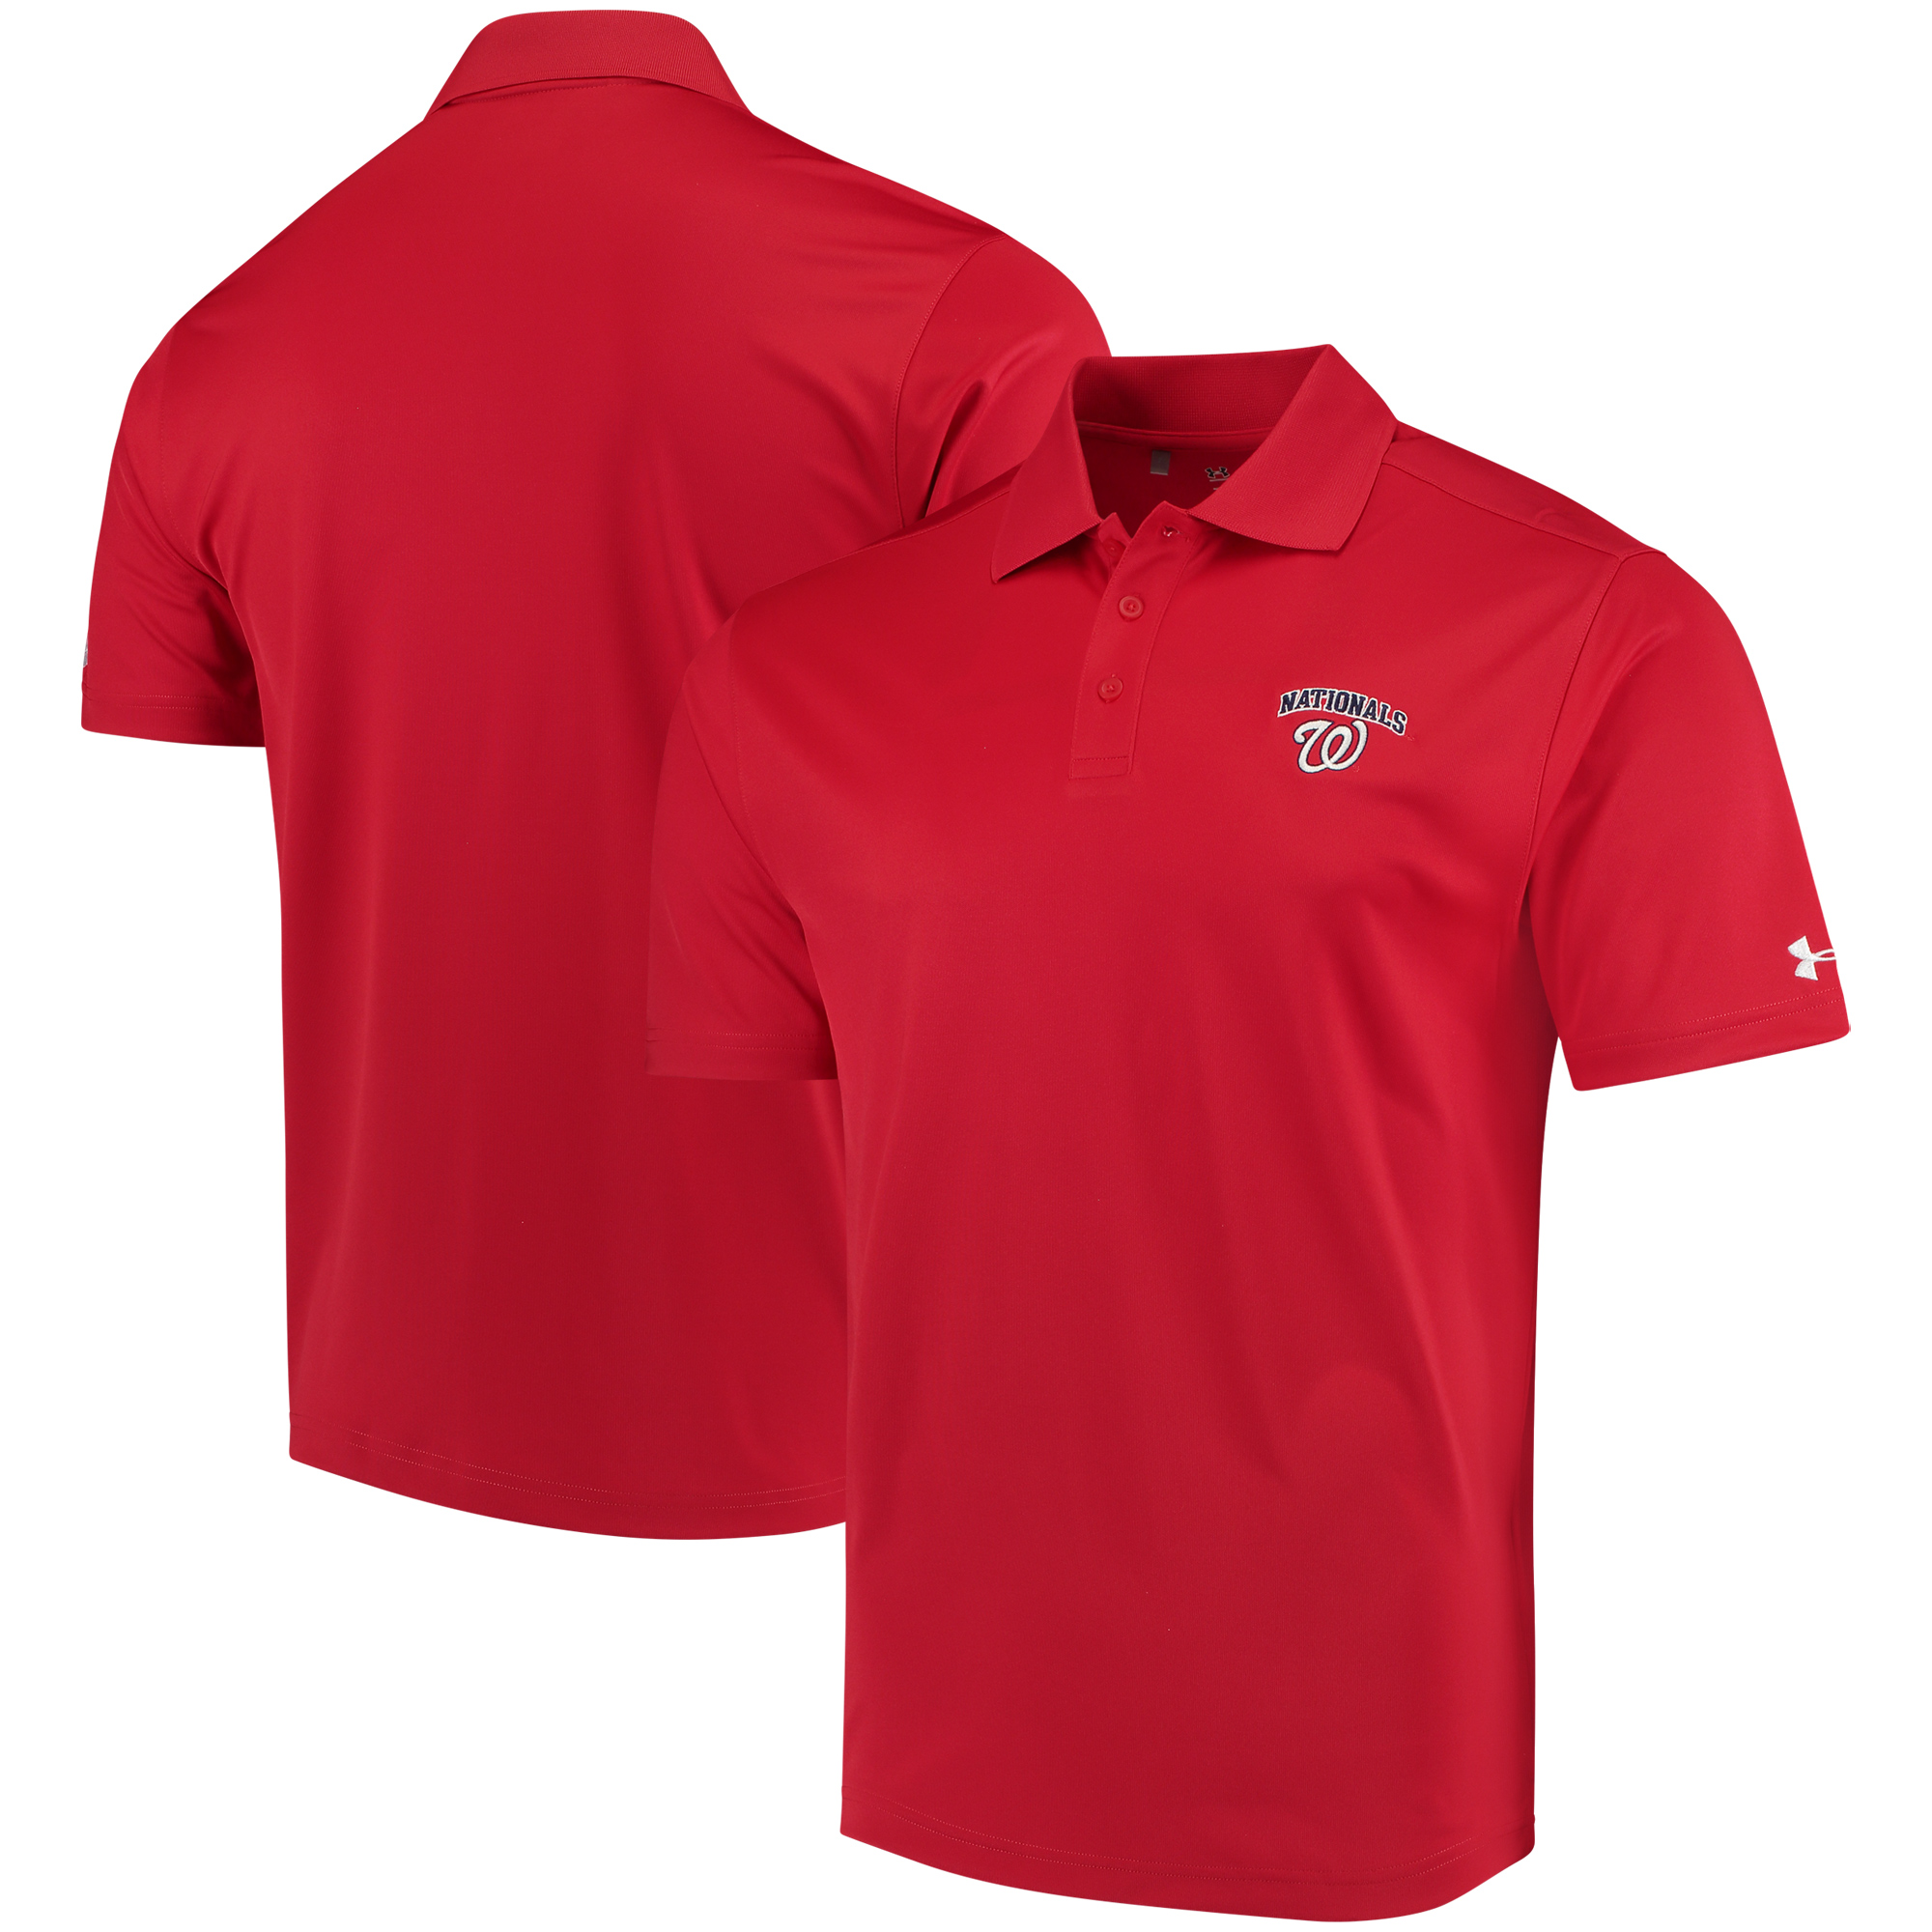 Washington Nationals Under Armour Performance Polo - Red